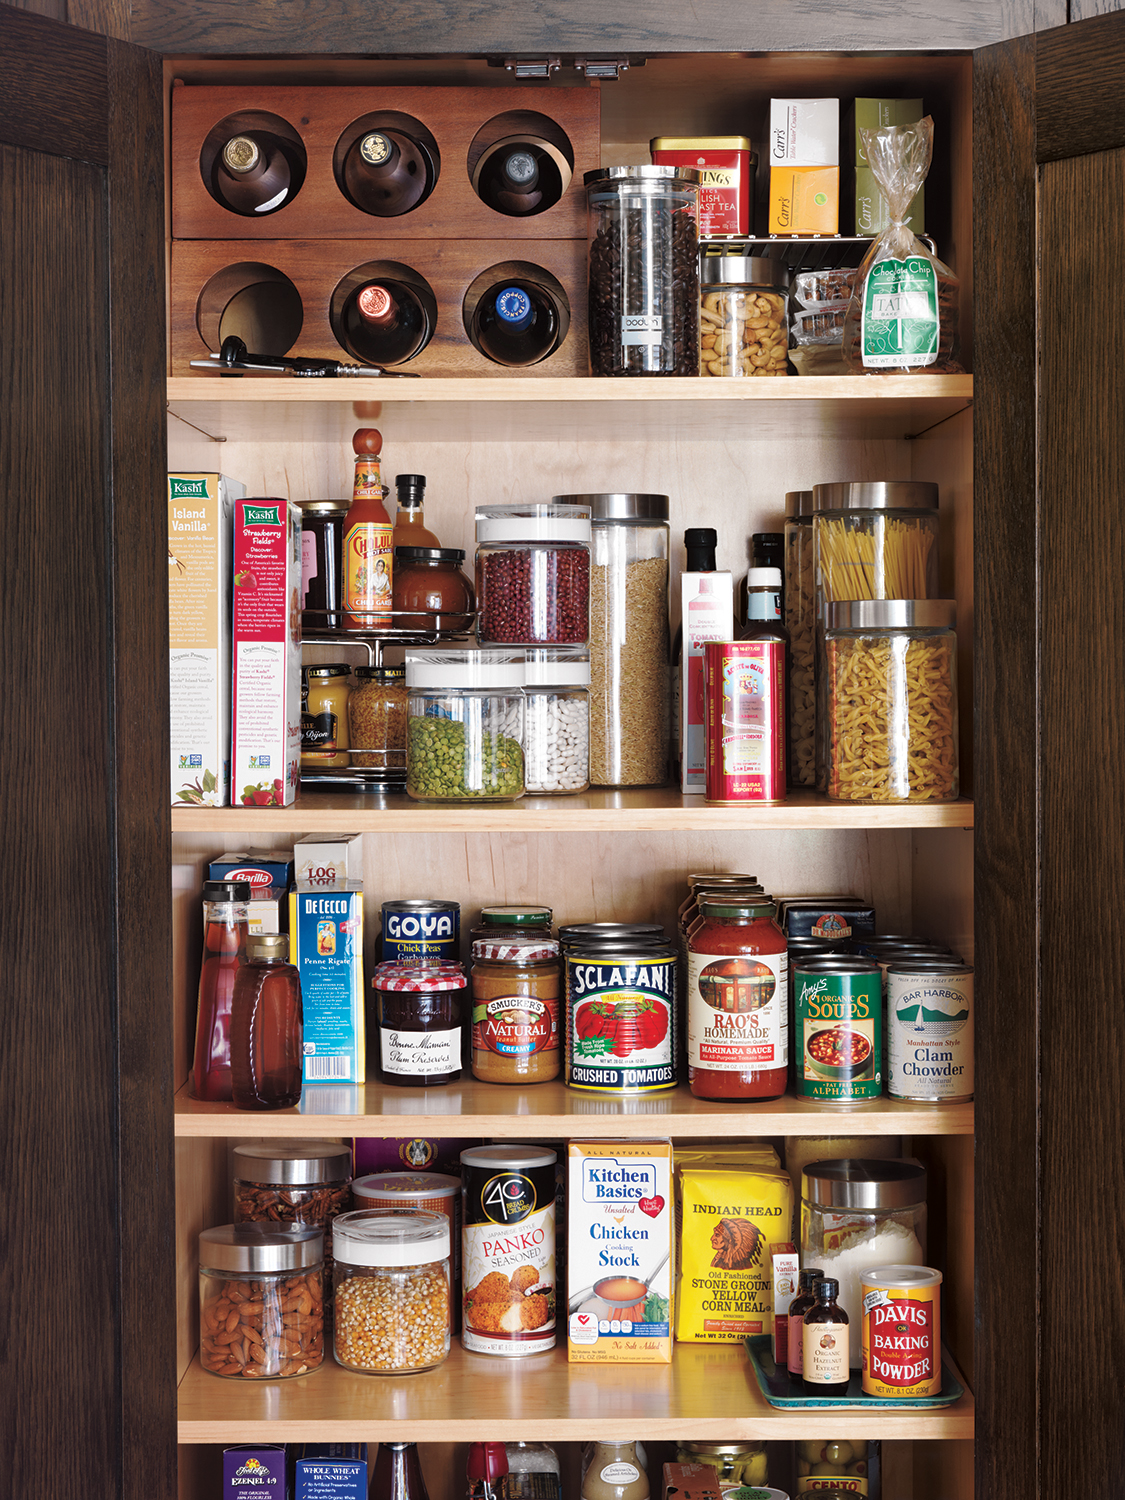 10 Items a Food Editor Has in Her Pantry at All Times